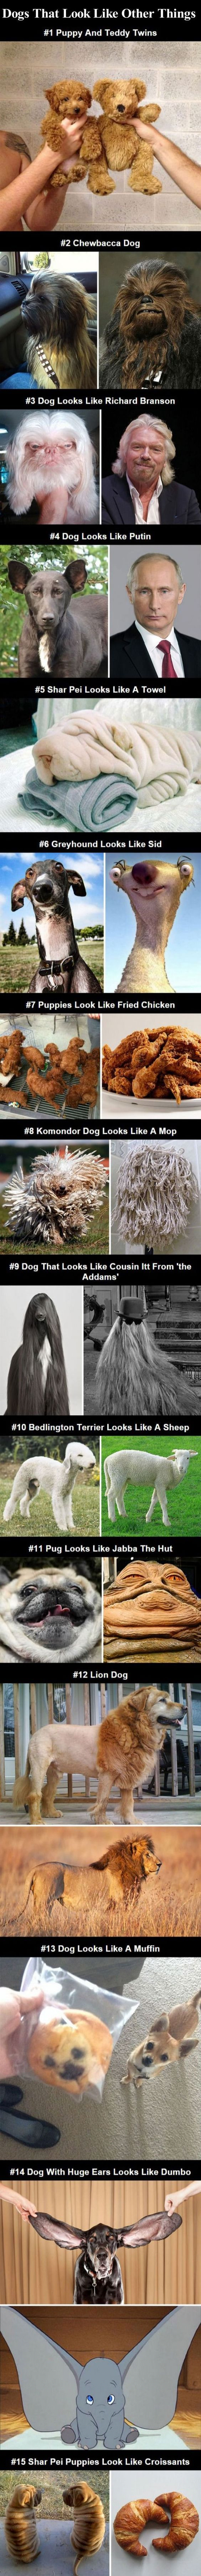 Dogs That Look Like Other Things cute animals dogs adorable dog puppy animal pets lol puppies humor funny pictures funny animals funny pets funny dogs: